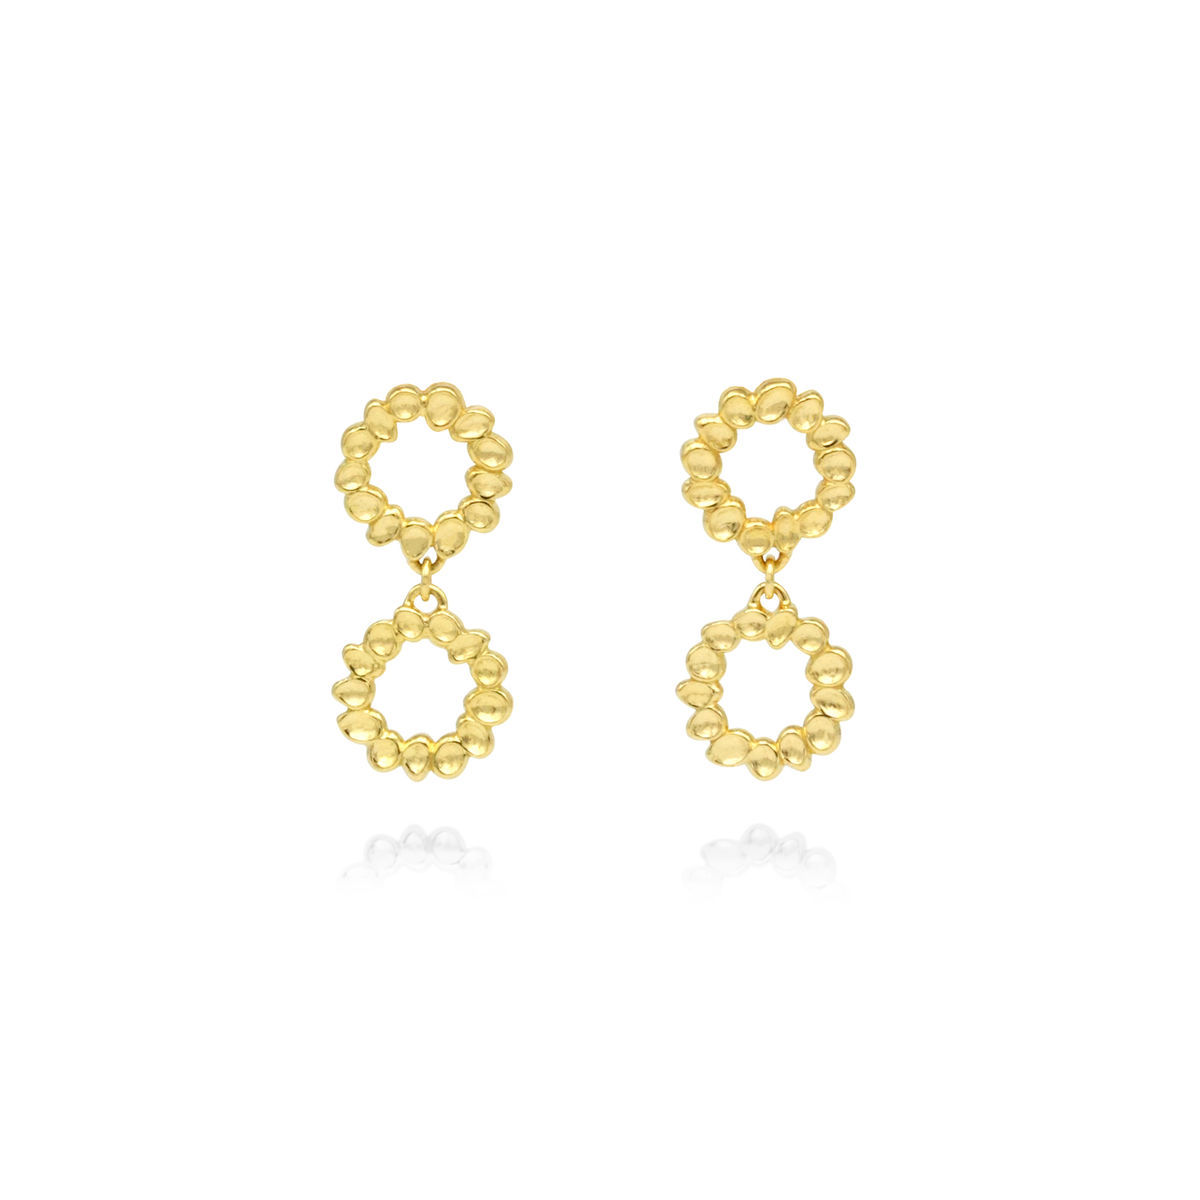 SHIMMER mini drop earrings - gold plated sterling silver - product images  of